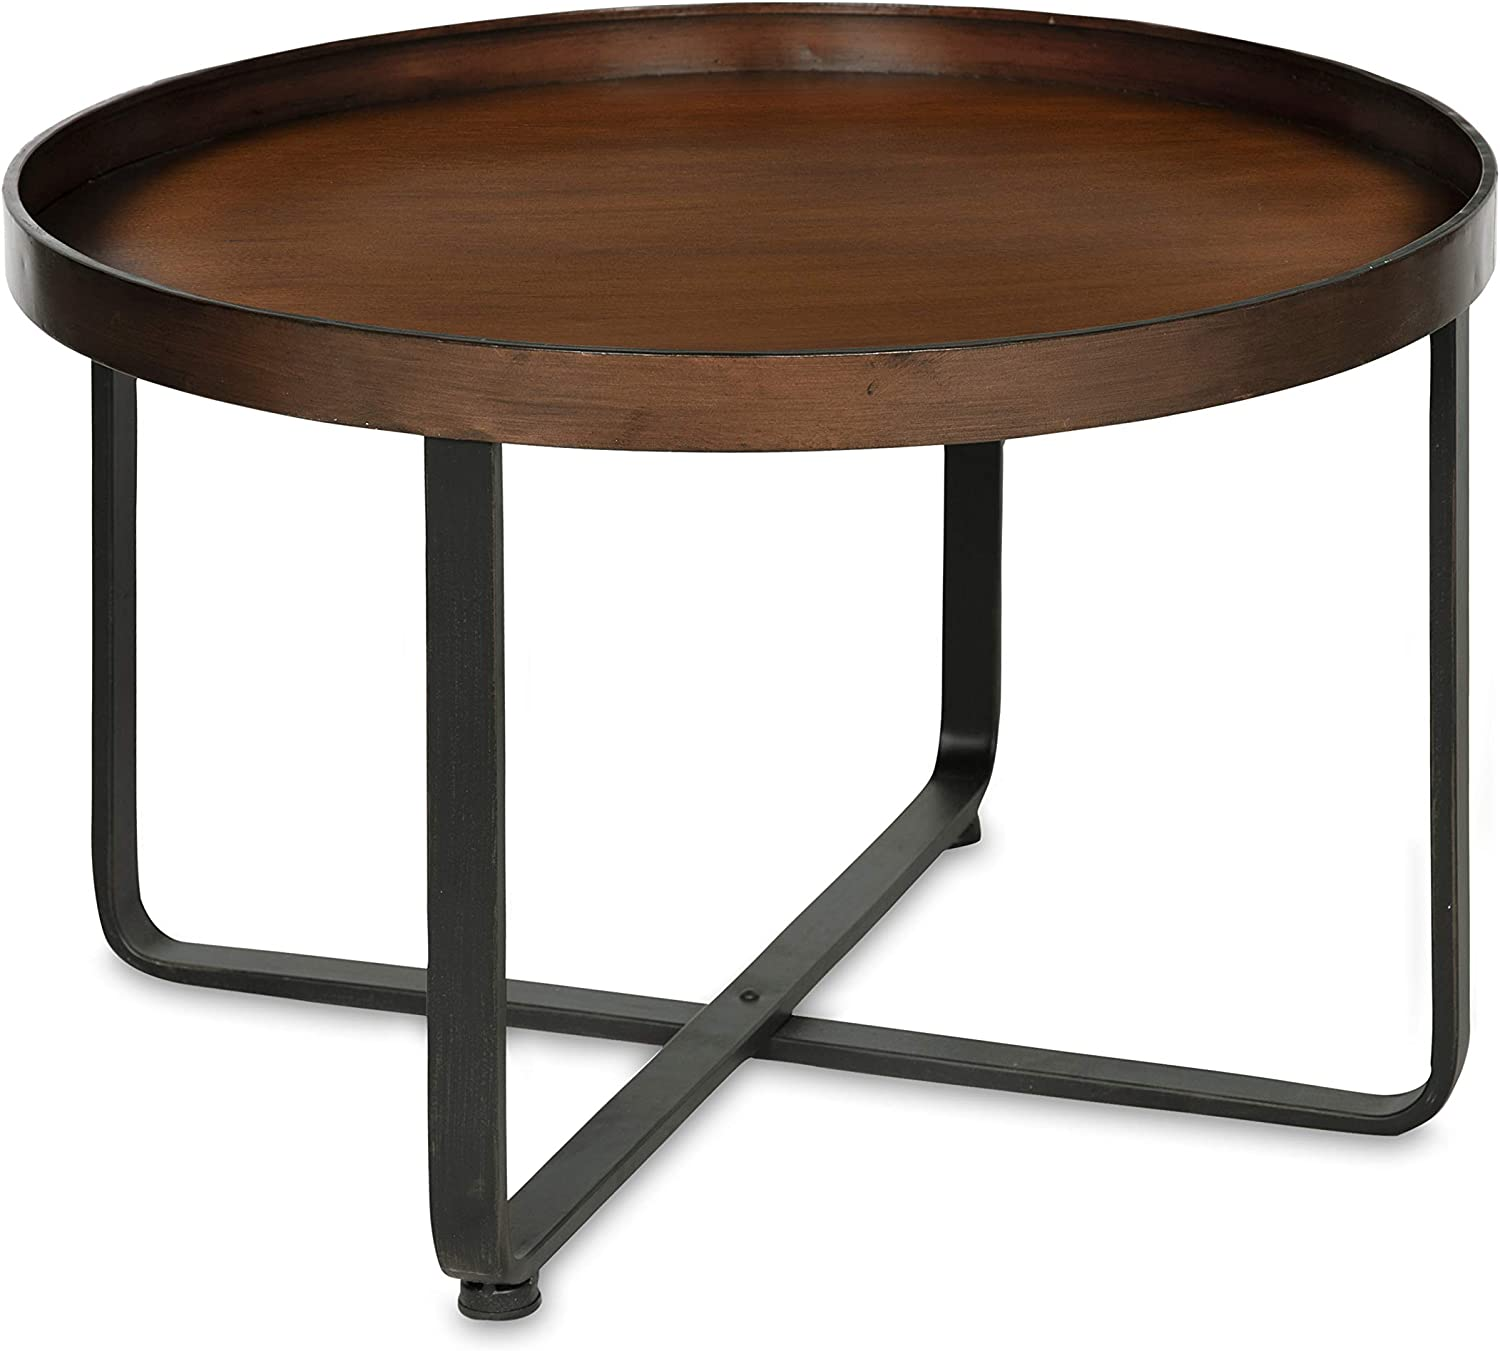 Amazon Com Kate And Laurel Zabel Modern Round Metal Coffee Table With Criss Cross Base Bronze And Black Furniture Decor